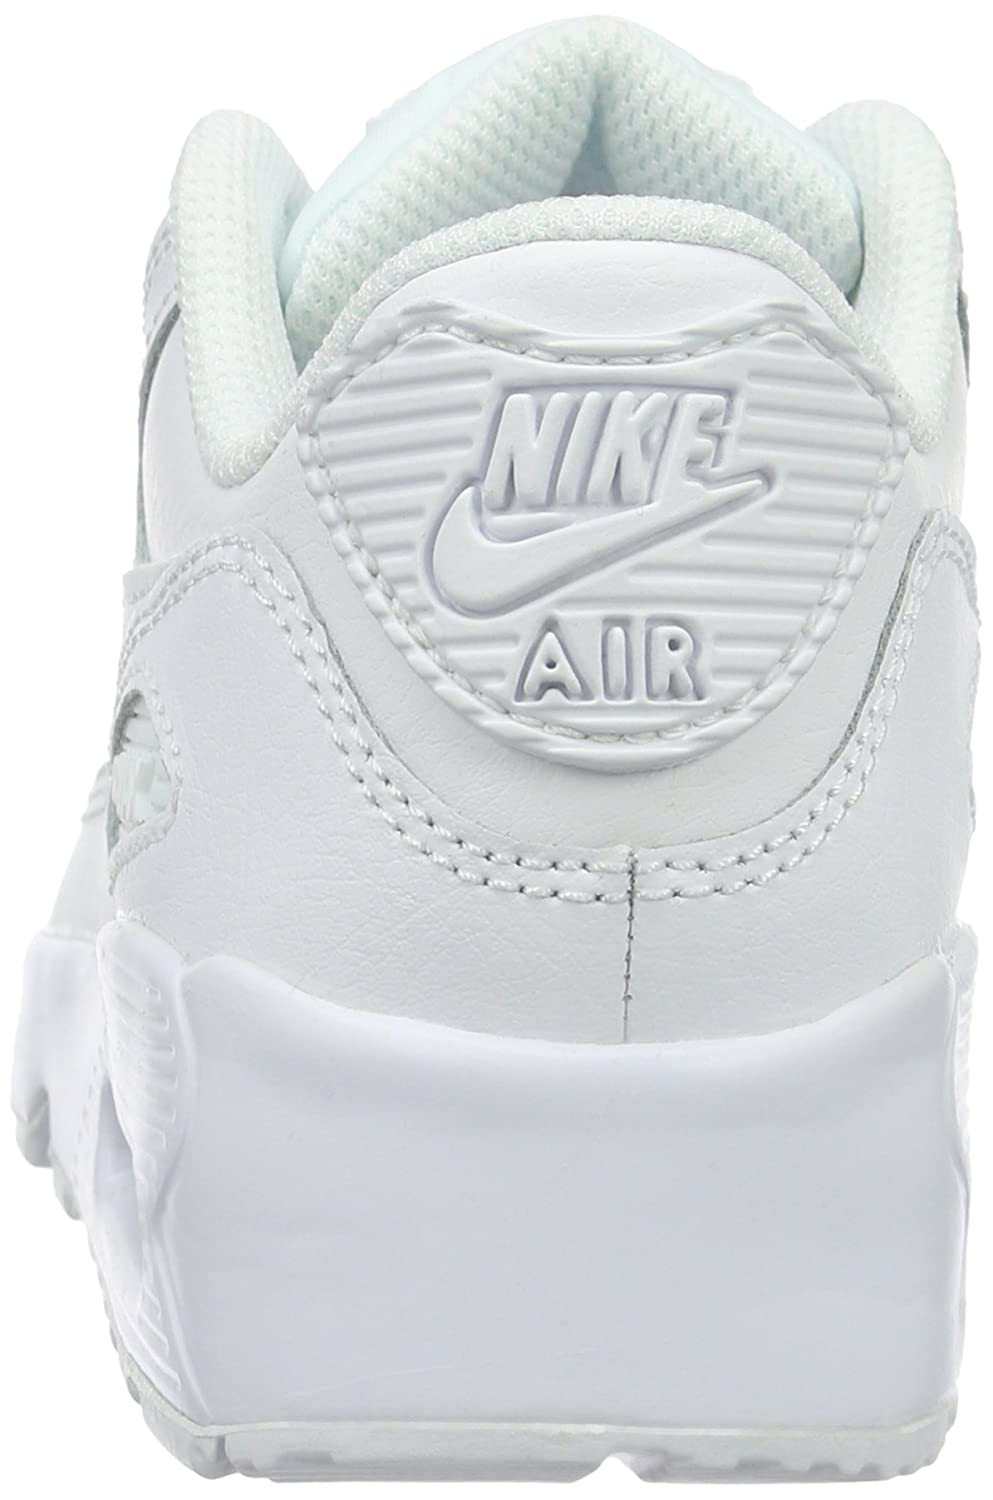 new arrival 21a7d e15a3 Nike 90 L Boys Running Shoes (White, 13.5 Y US) Buy Online at Low Prices  in India - Amazon.in